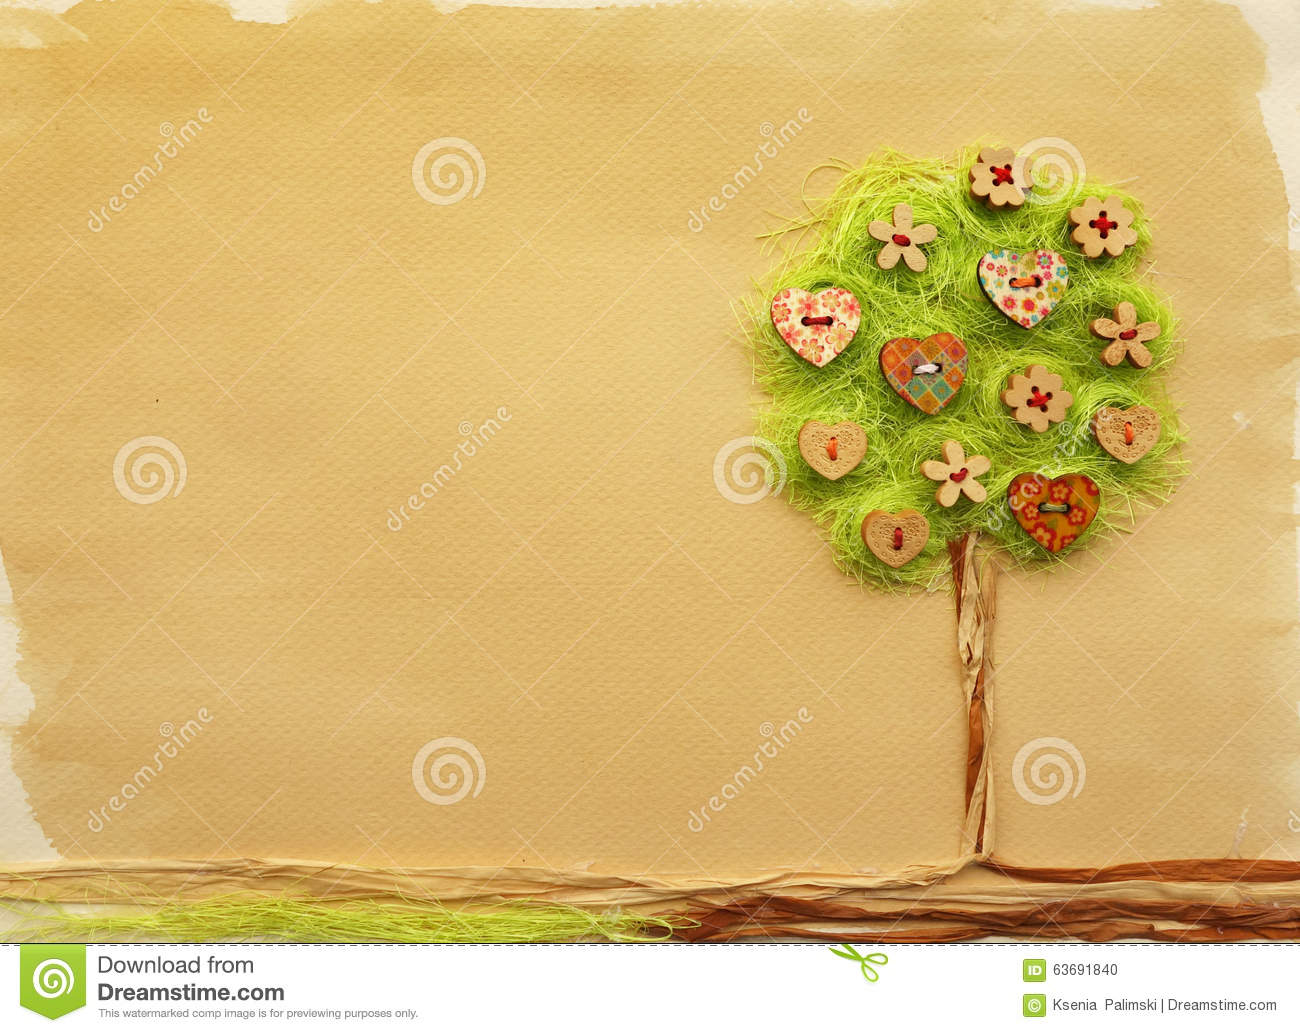 Tree Craft Stock Illustration Illustration Of Green 63691840